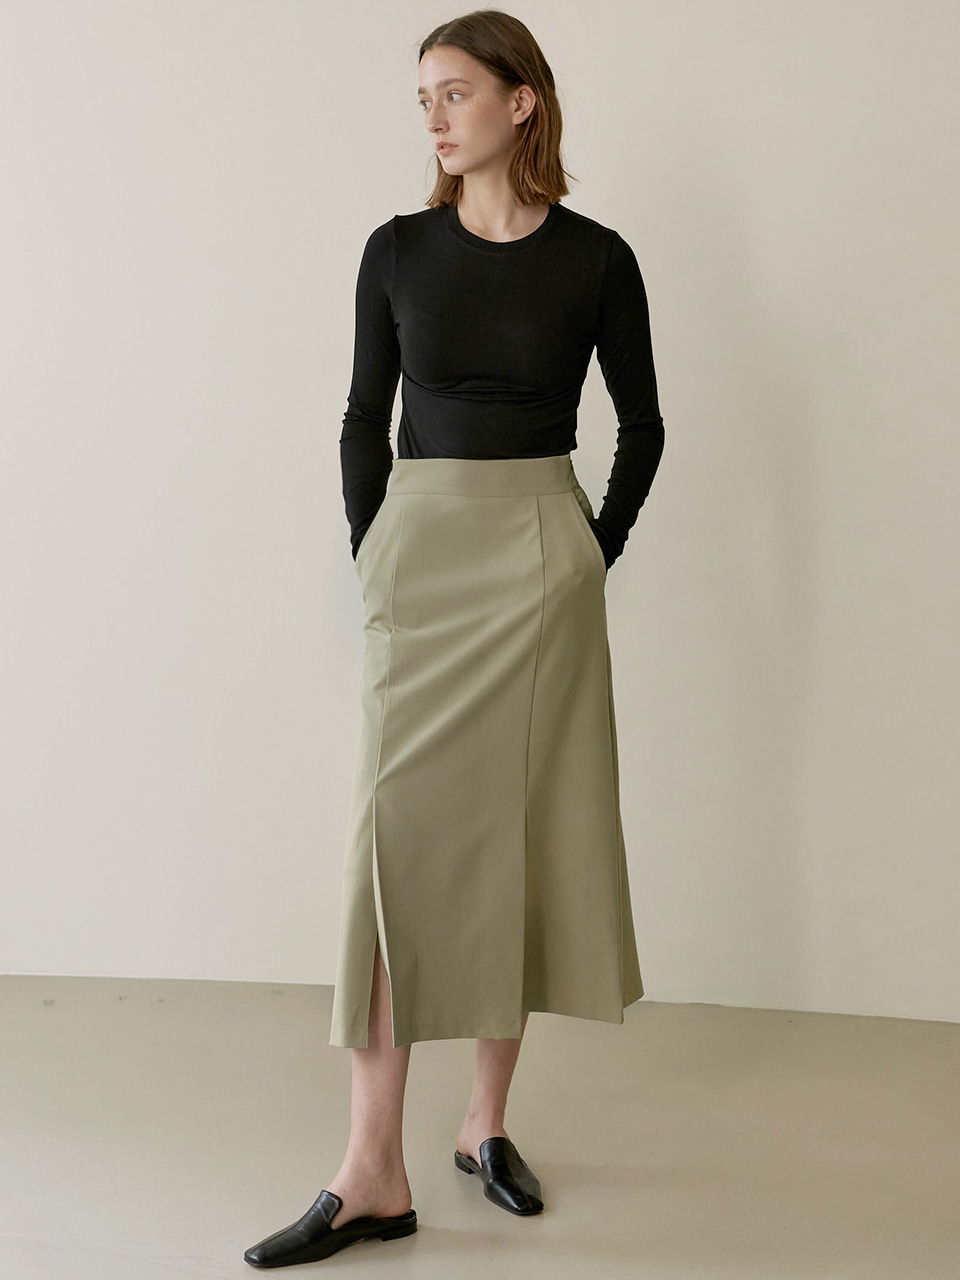 Aline slit skirt - Mint